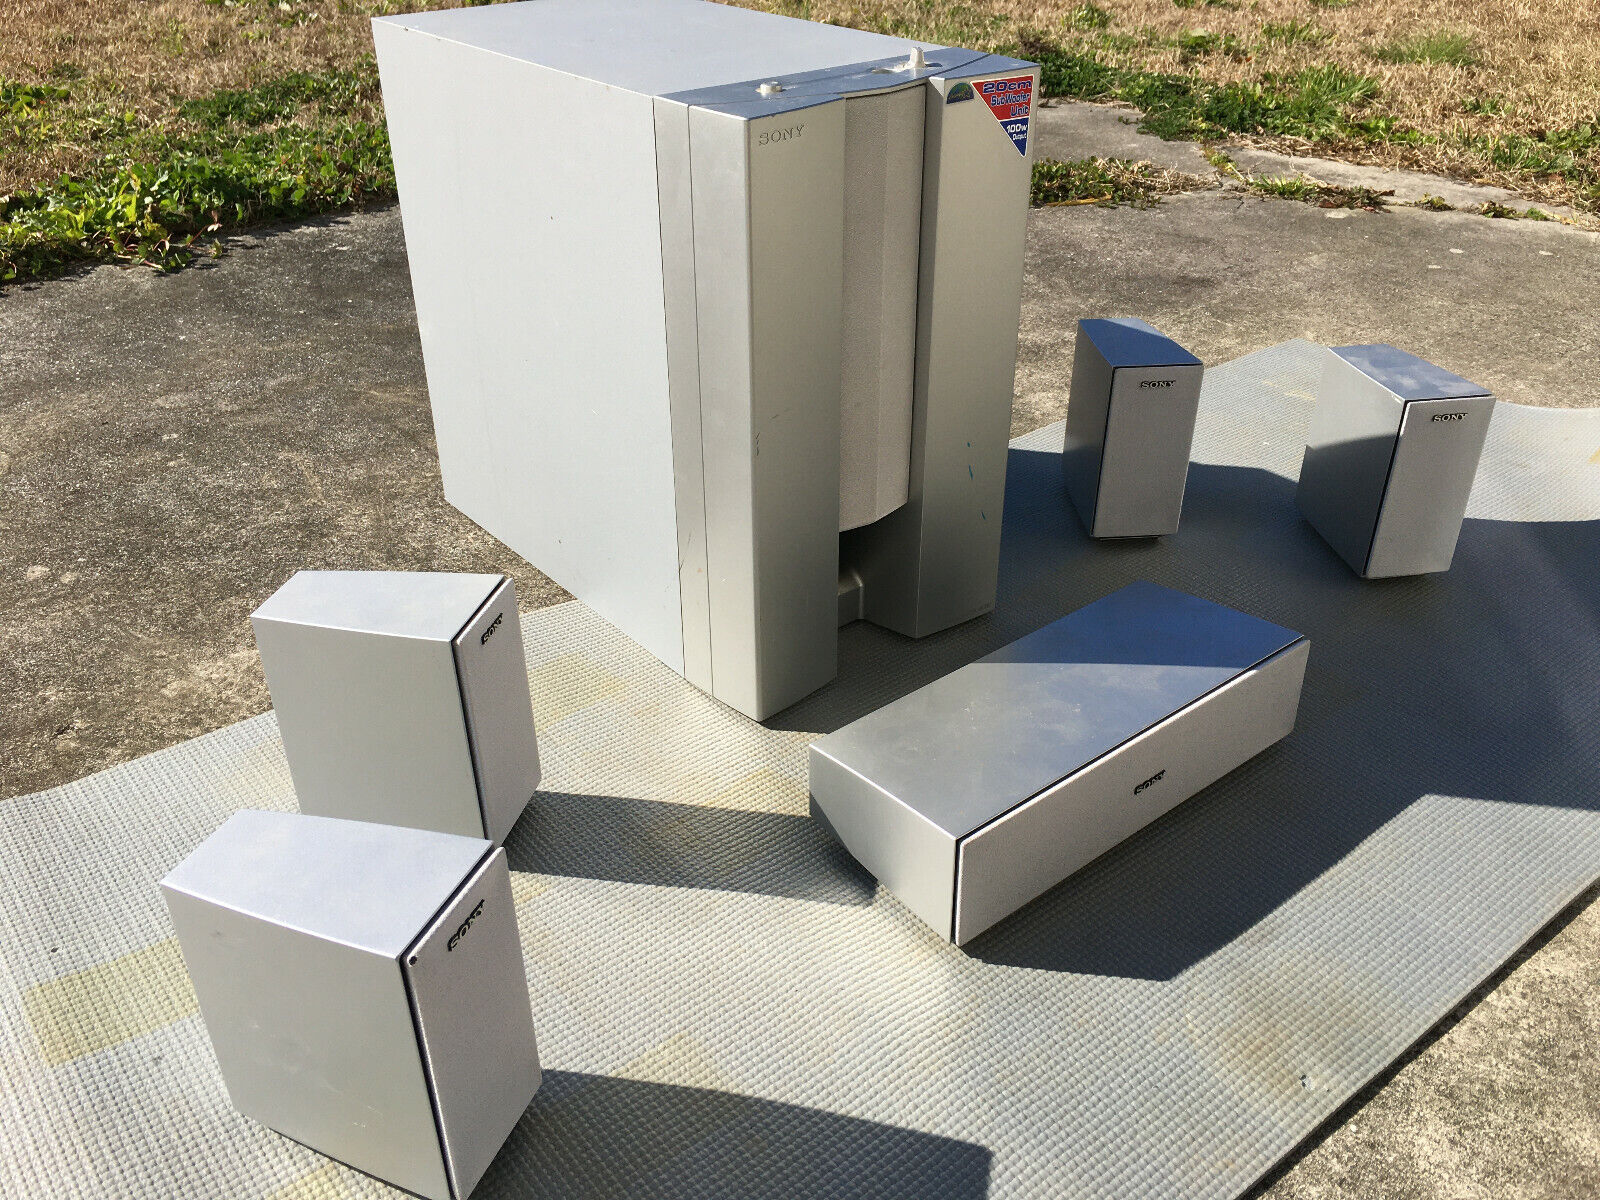 6 Piece Sony Surround Sound Speaker System - Tested and Working. Buy it now for 129.99